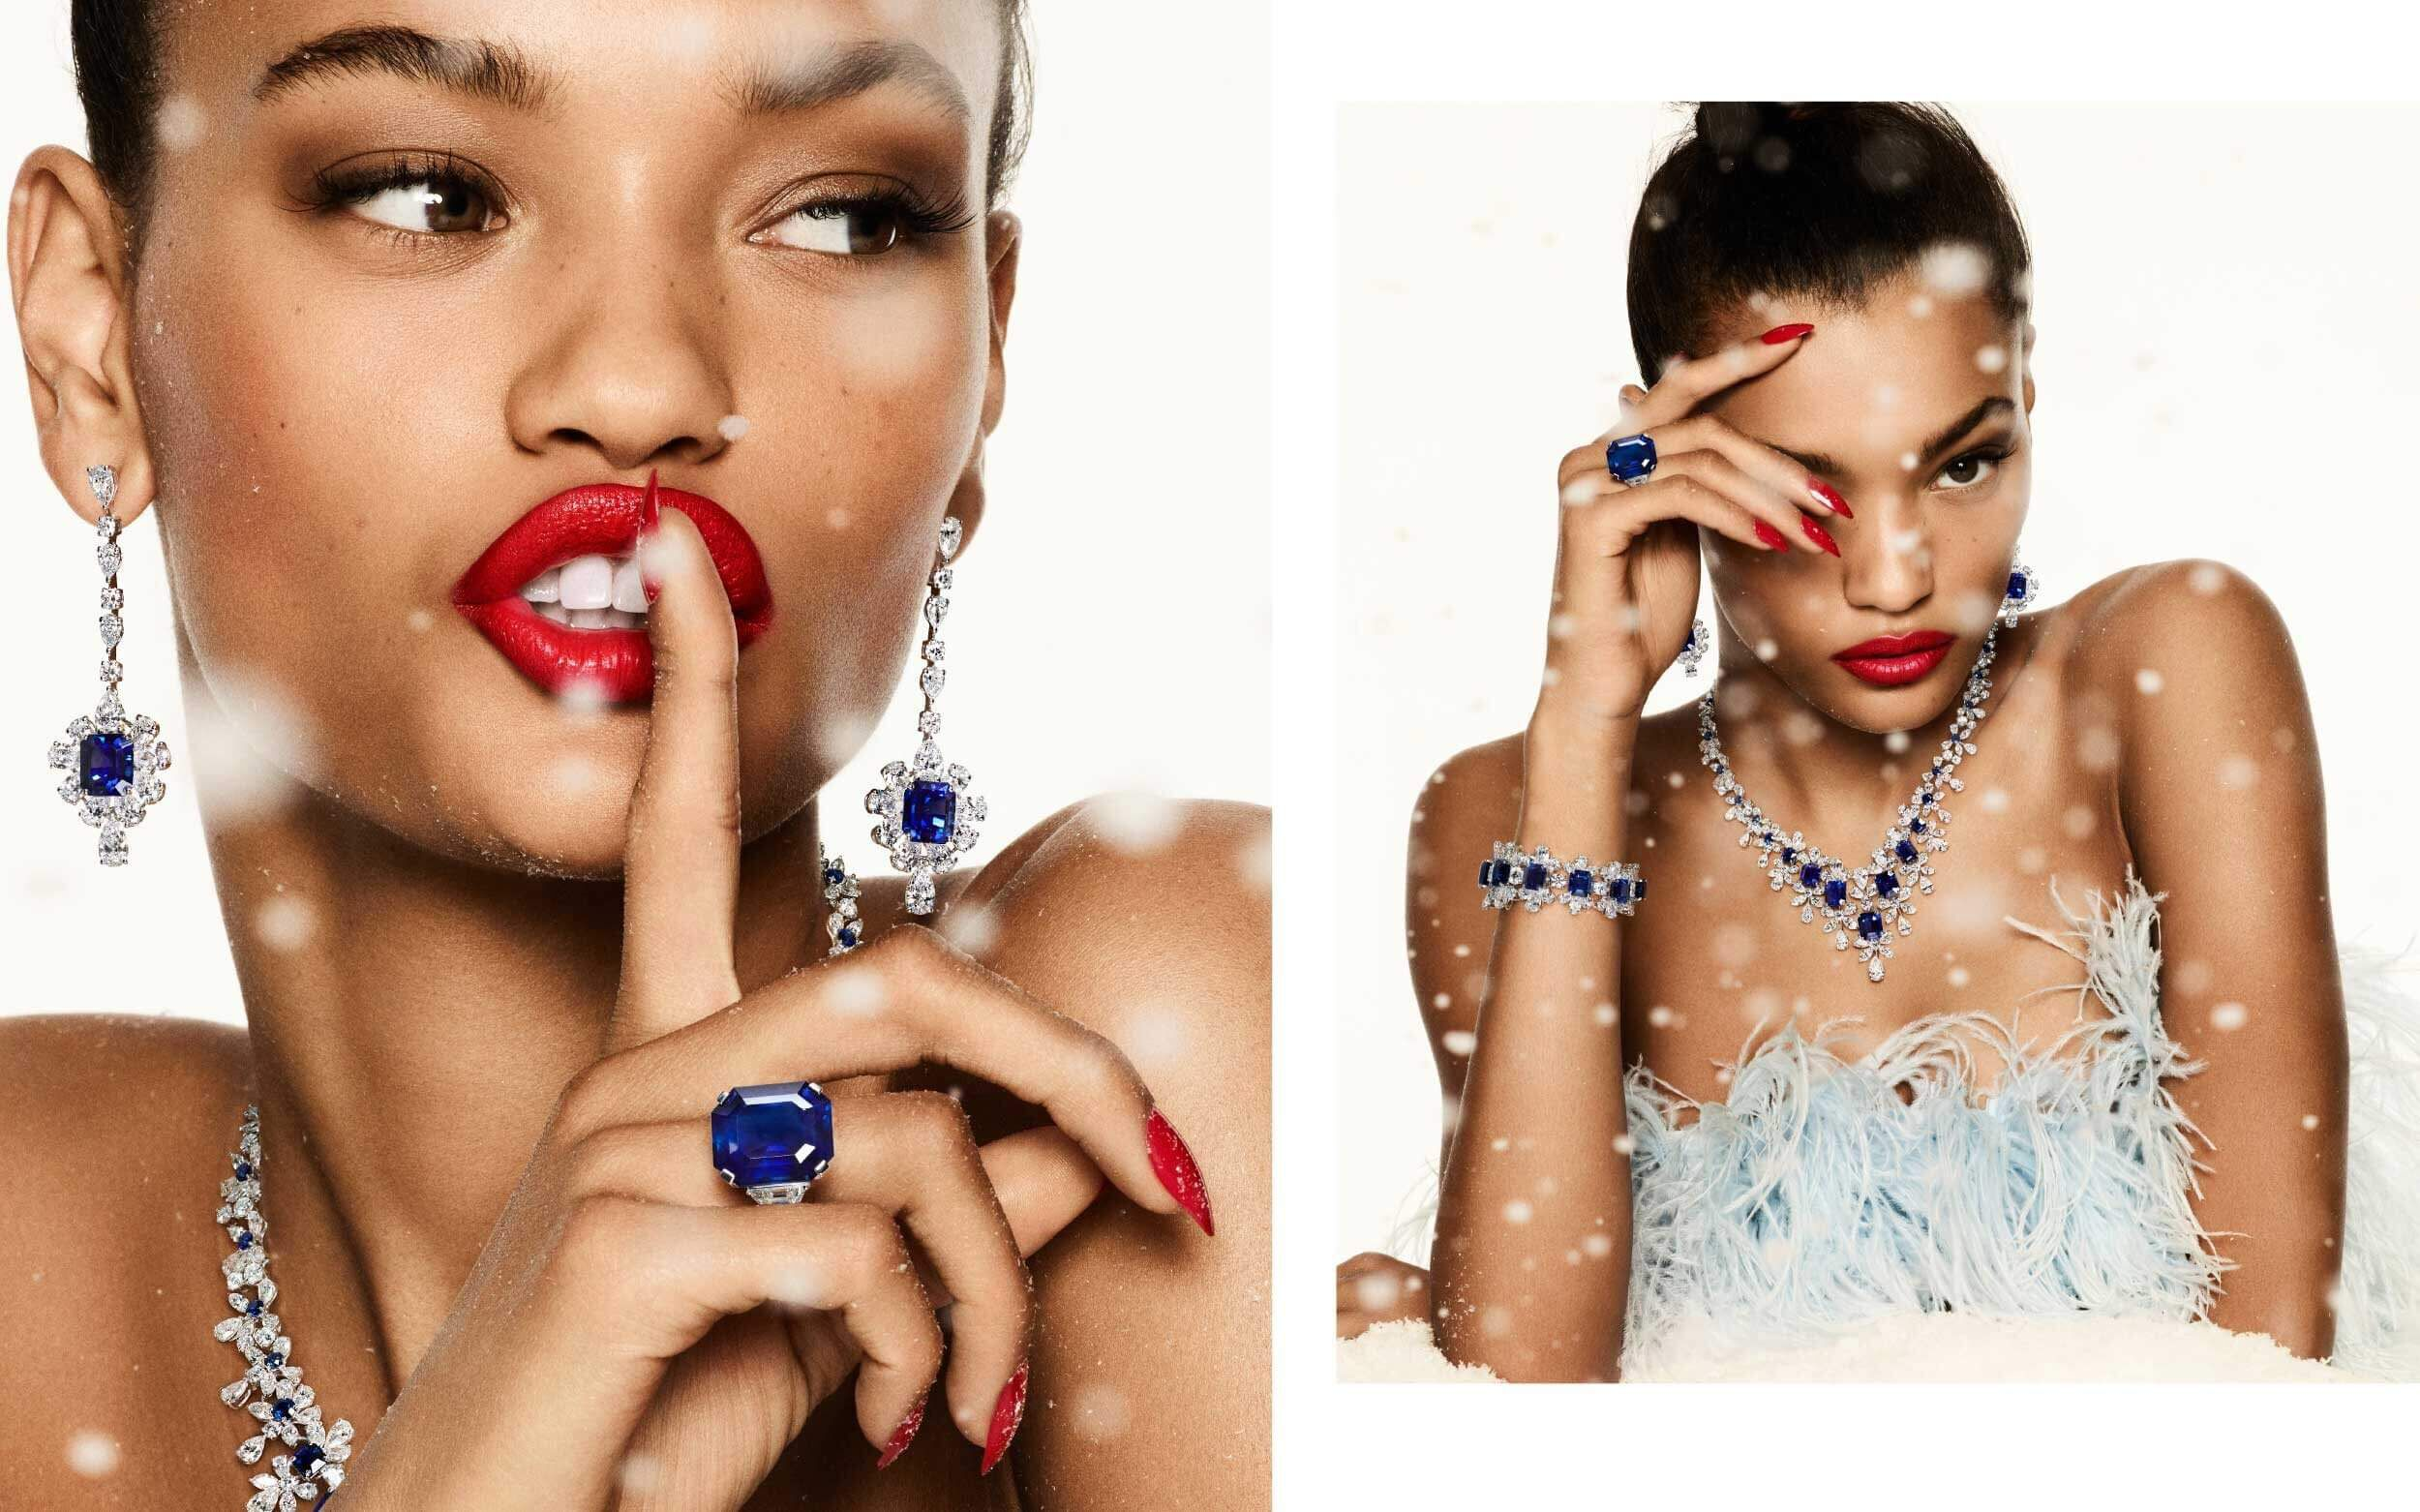 a lady wearing different Graff sapphire high jewellery sets in two images